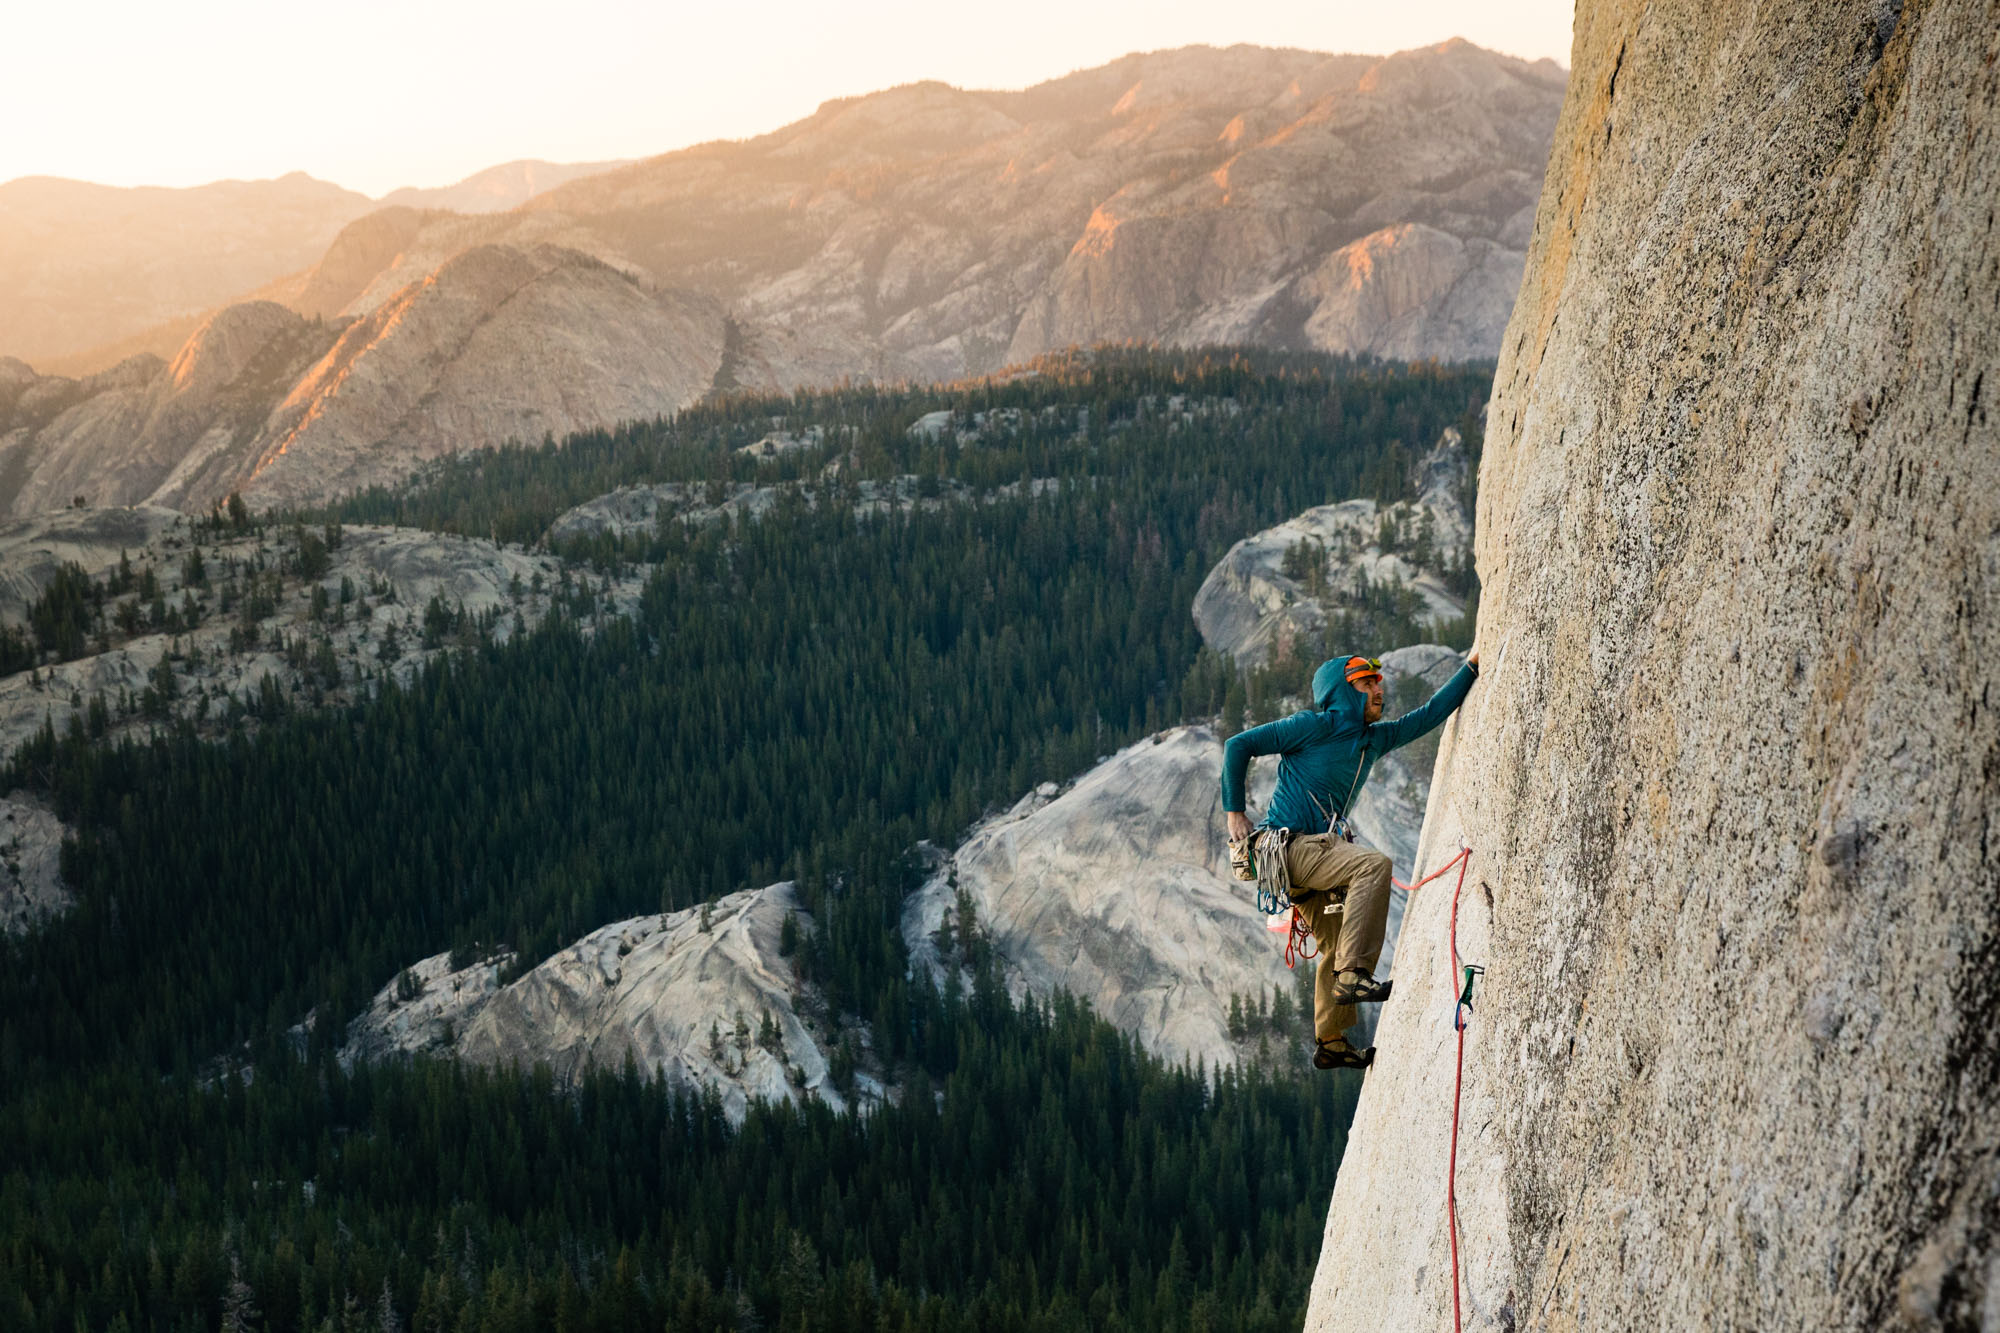 Rock Climbing in Tuolumne Meadows Yosemite National Park | Action Sports Photographer